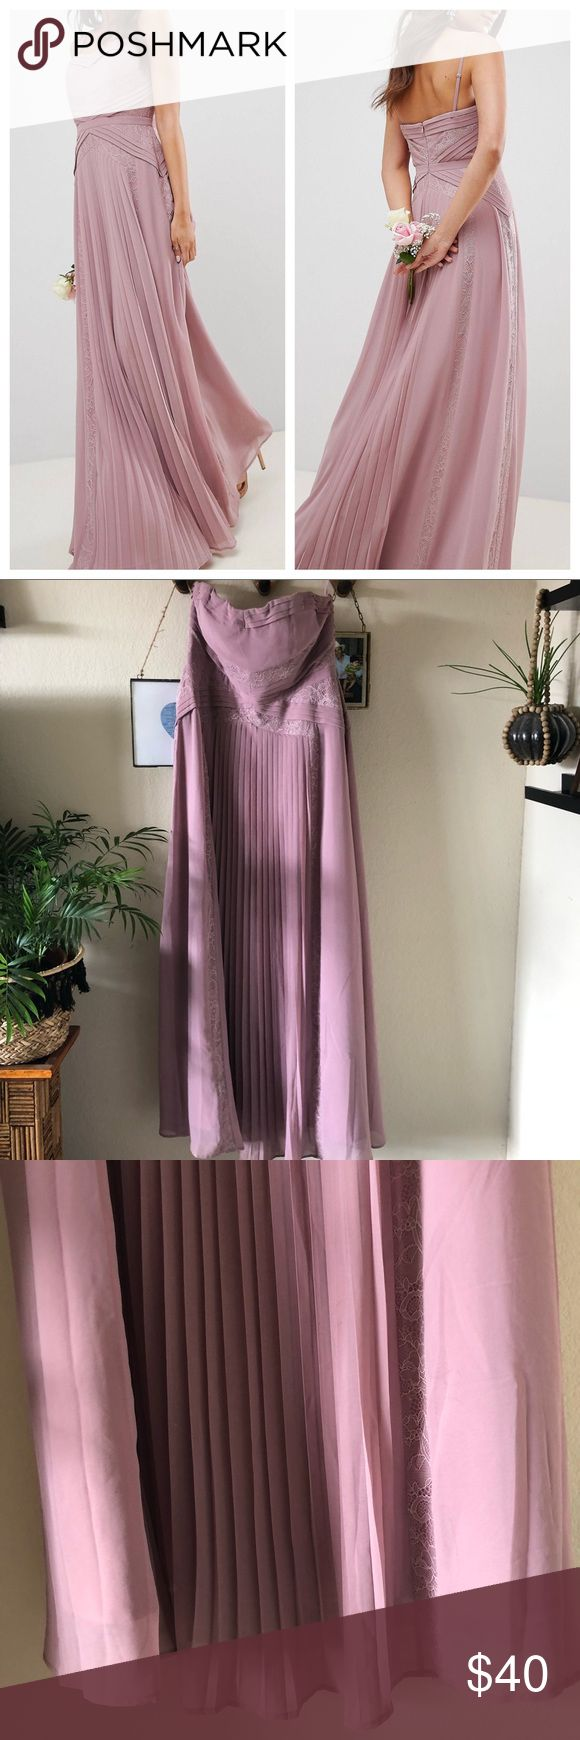 ASOS Tall Mauve / Dusty Rose Bridesmaid Dress! ASOS TALL brand. Worn only once f…